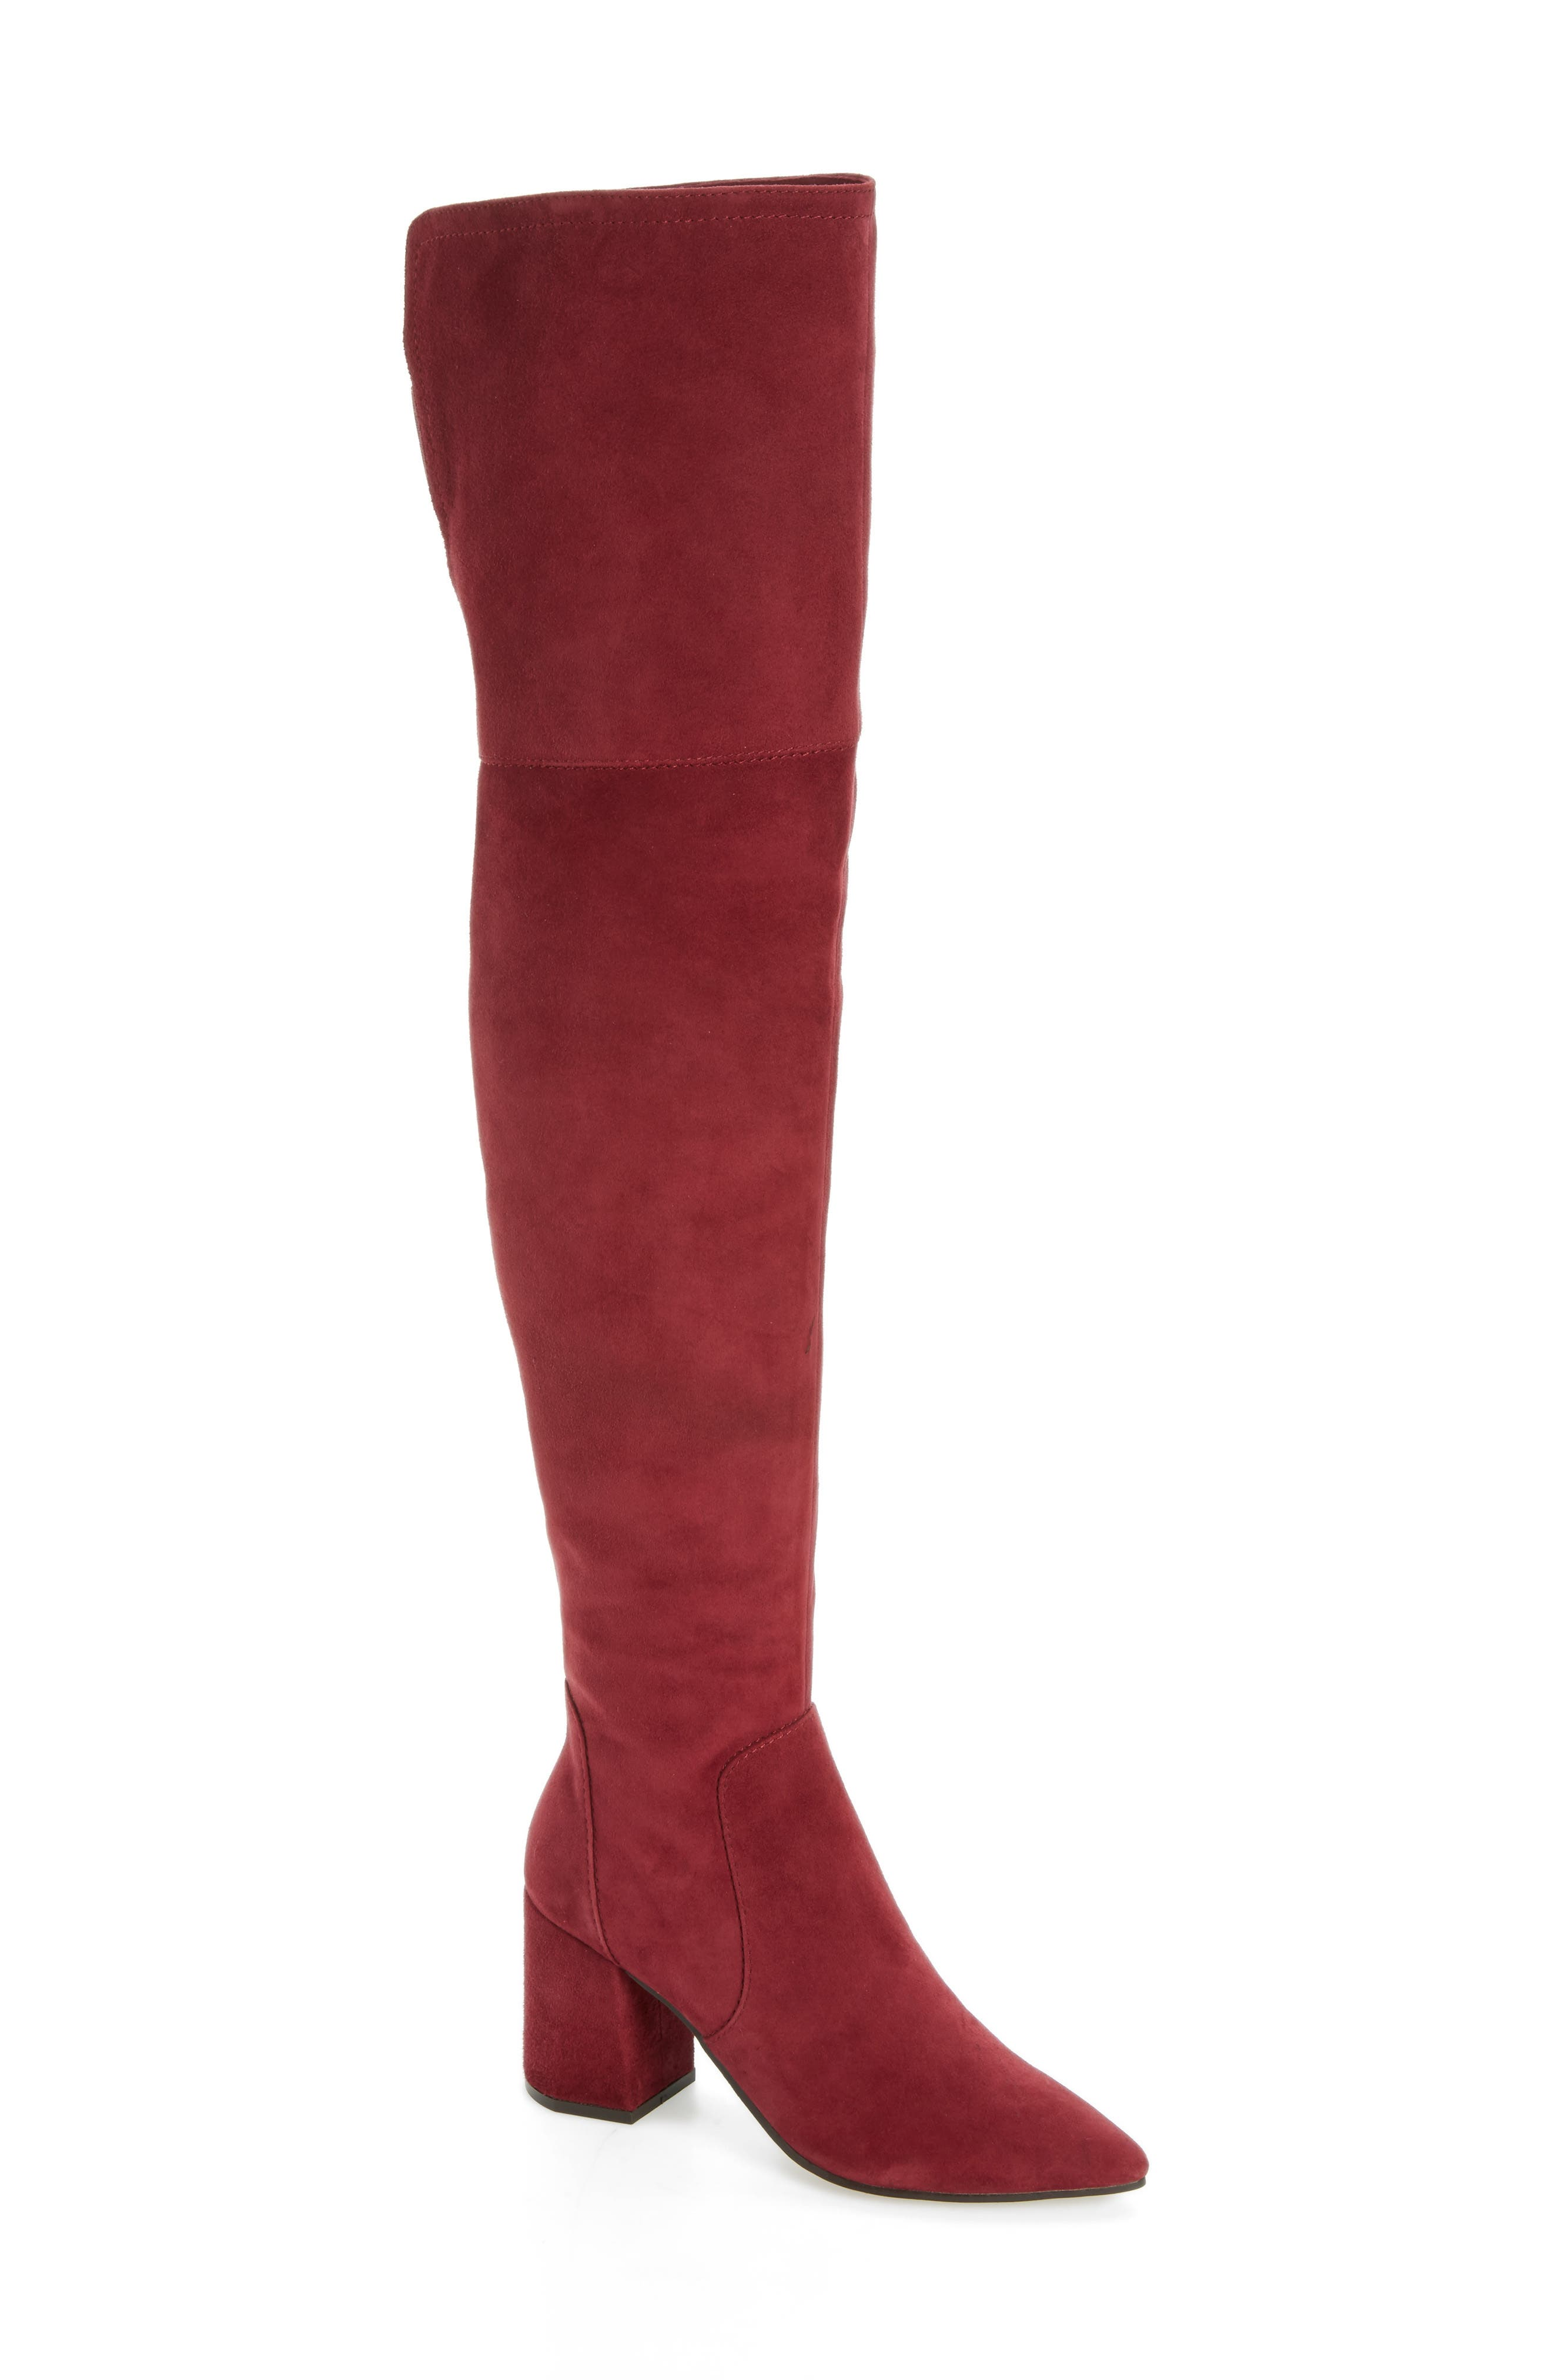 Main Image - Linea Paolo Bella Over the Knee Boot (Women)